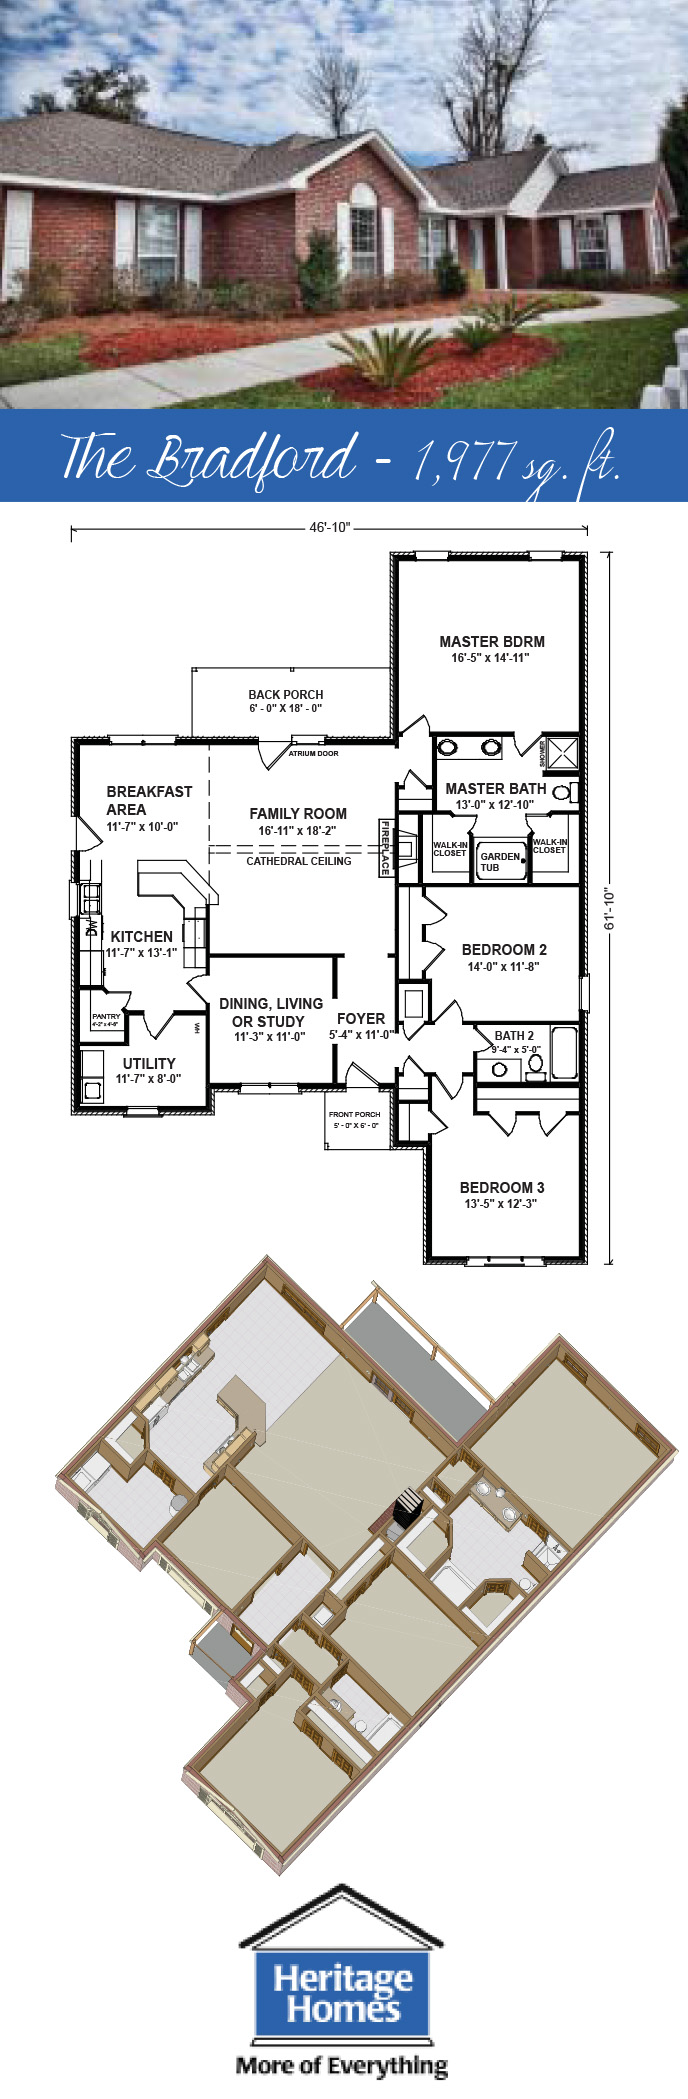 The Bradford Floor Plan 1 977 Square Feet 3bed 2bath Visit The Builder Heritage Homes To Learn More About This Floor Plans House Floor Plans House Plans